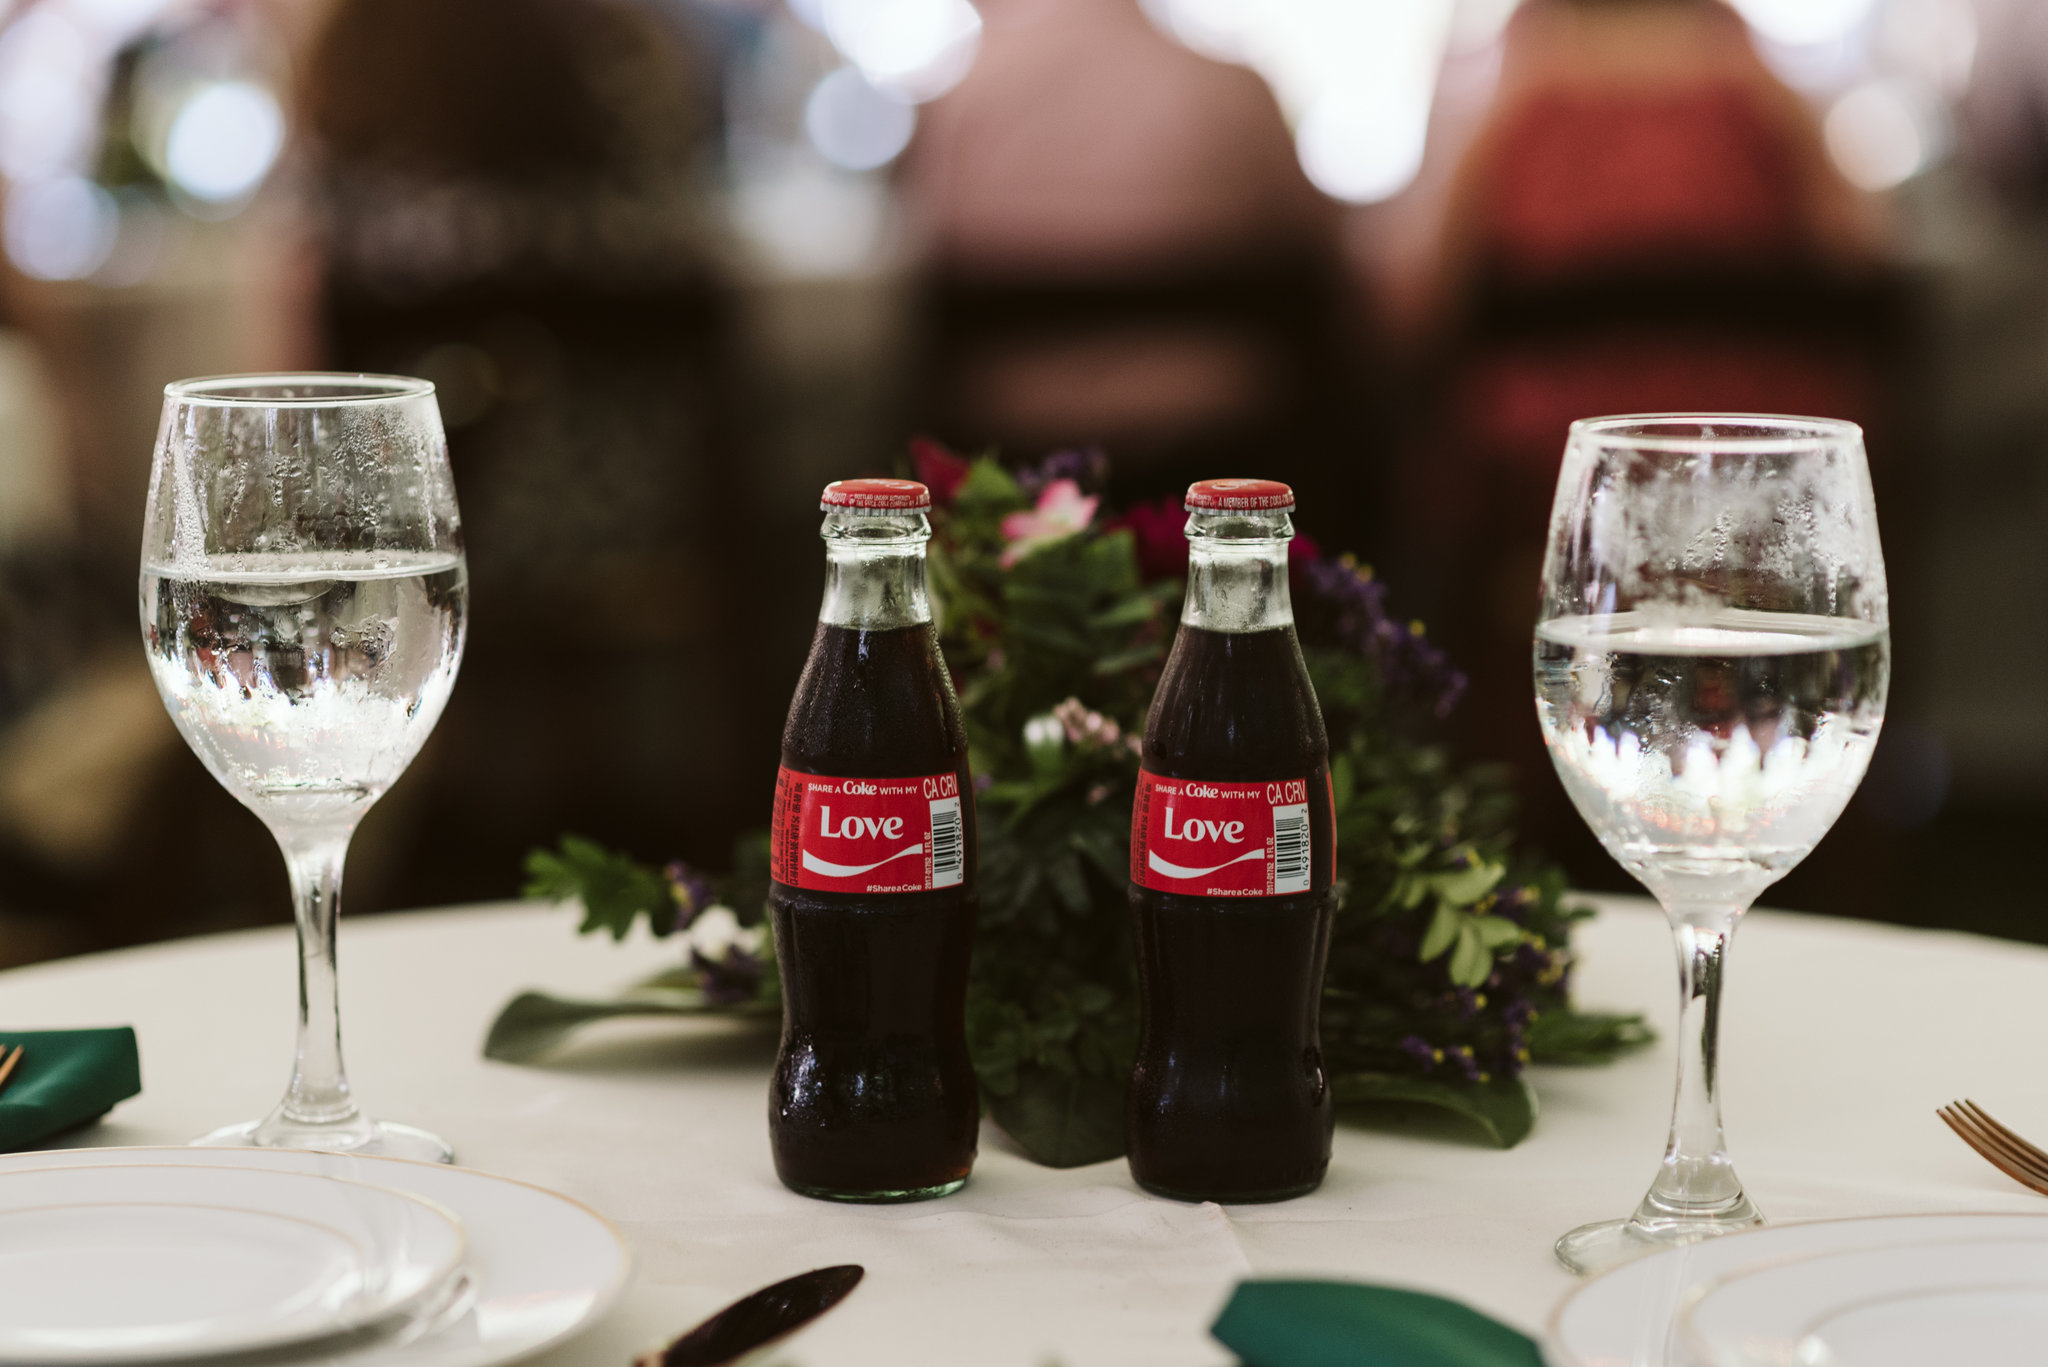 Annapolis, Quaker Wedding, Maryland Wedding Photographer, Intimate, Small Wedding, Vintage, DIY, Coke with Love Labels, Wedding Reception Decor